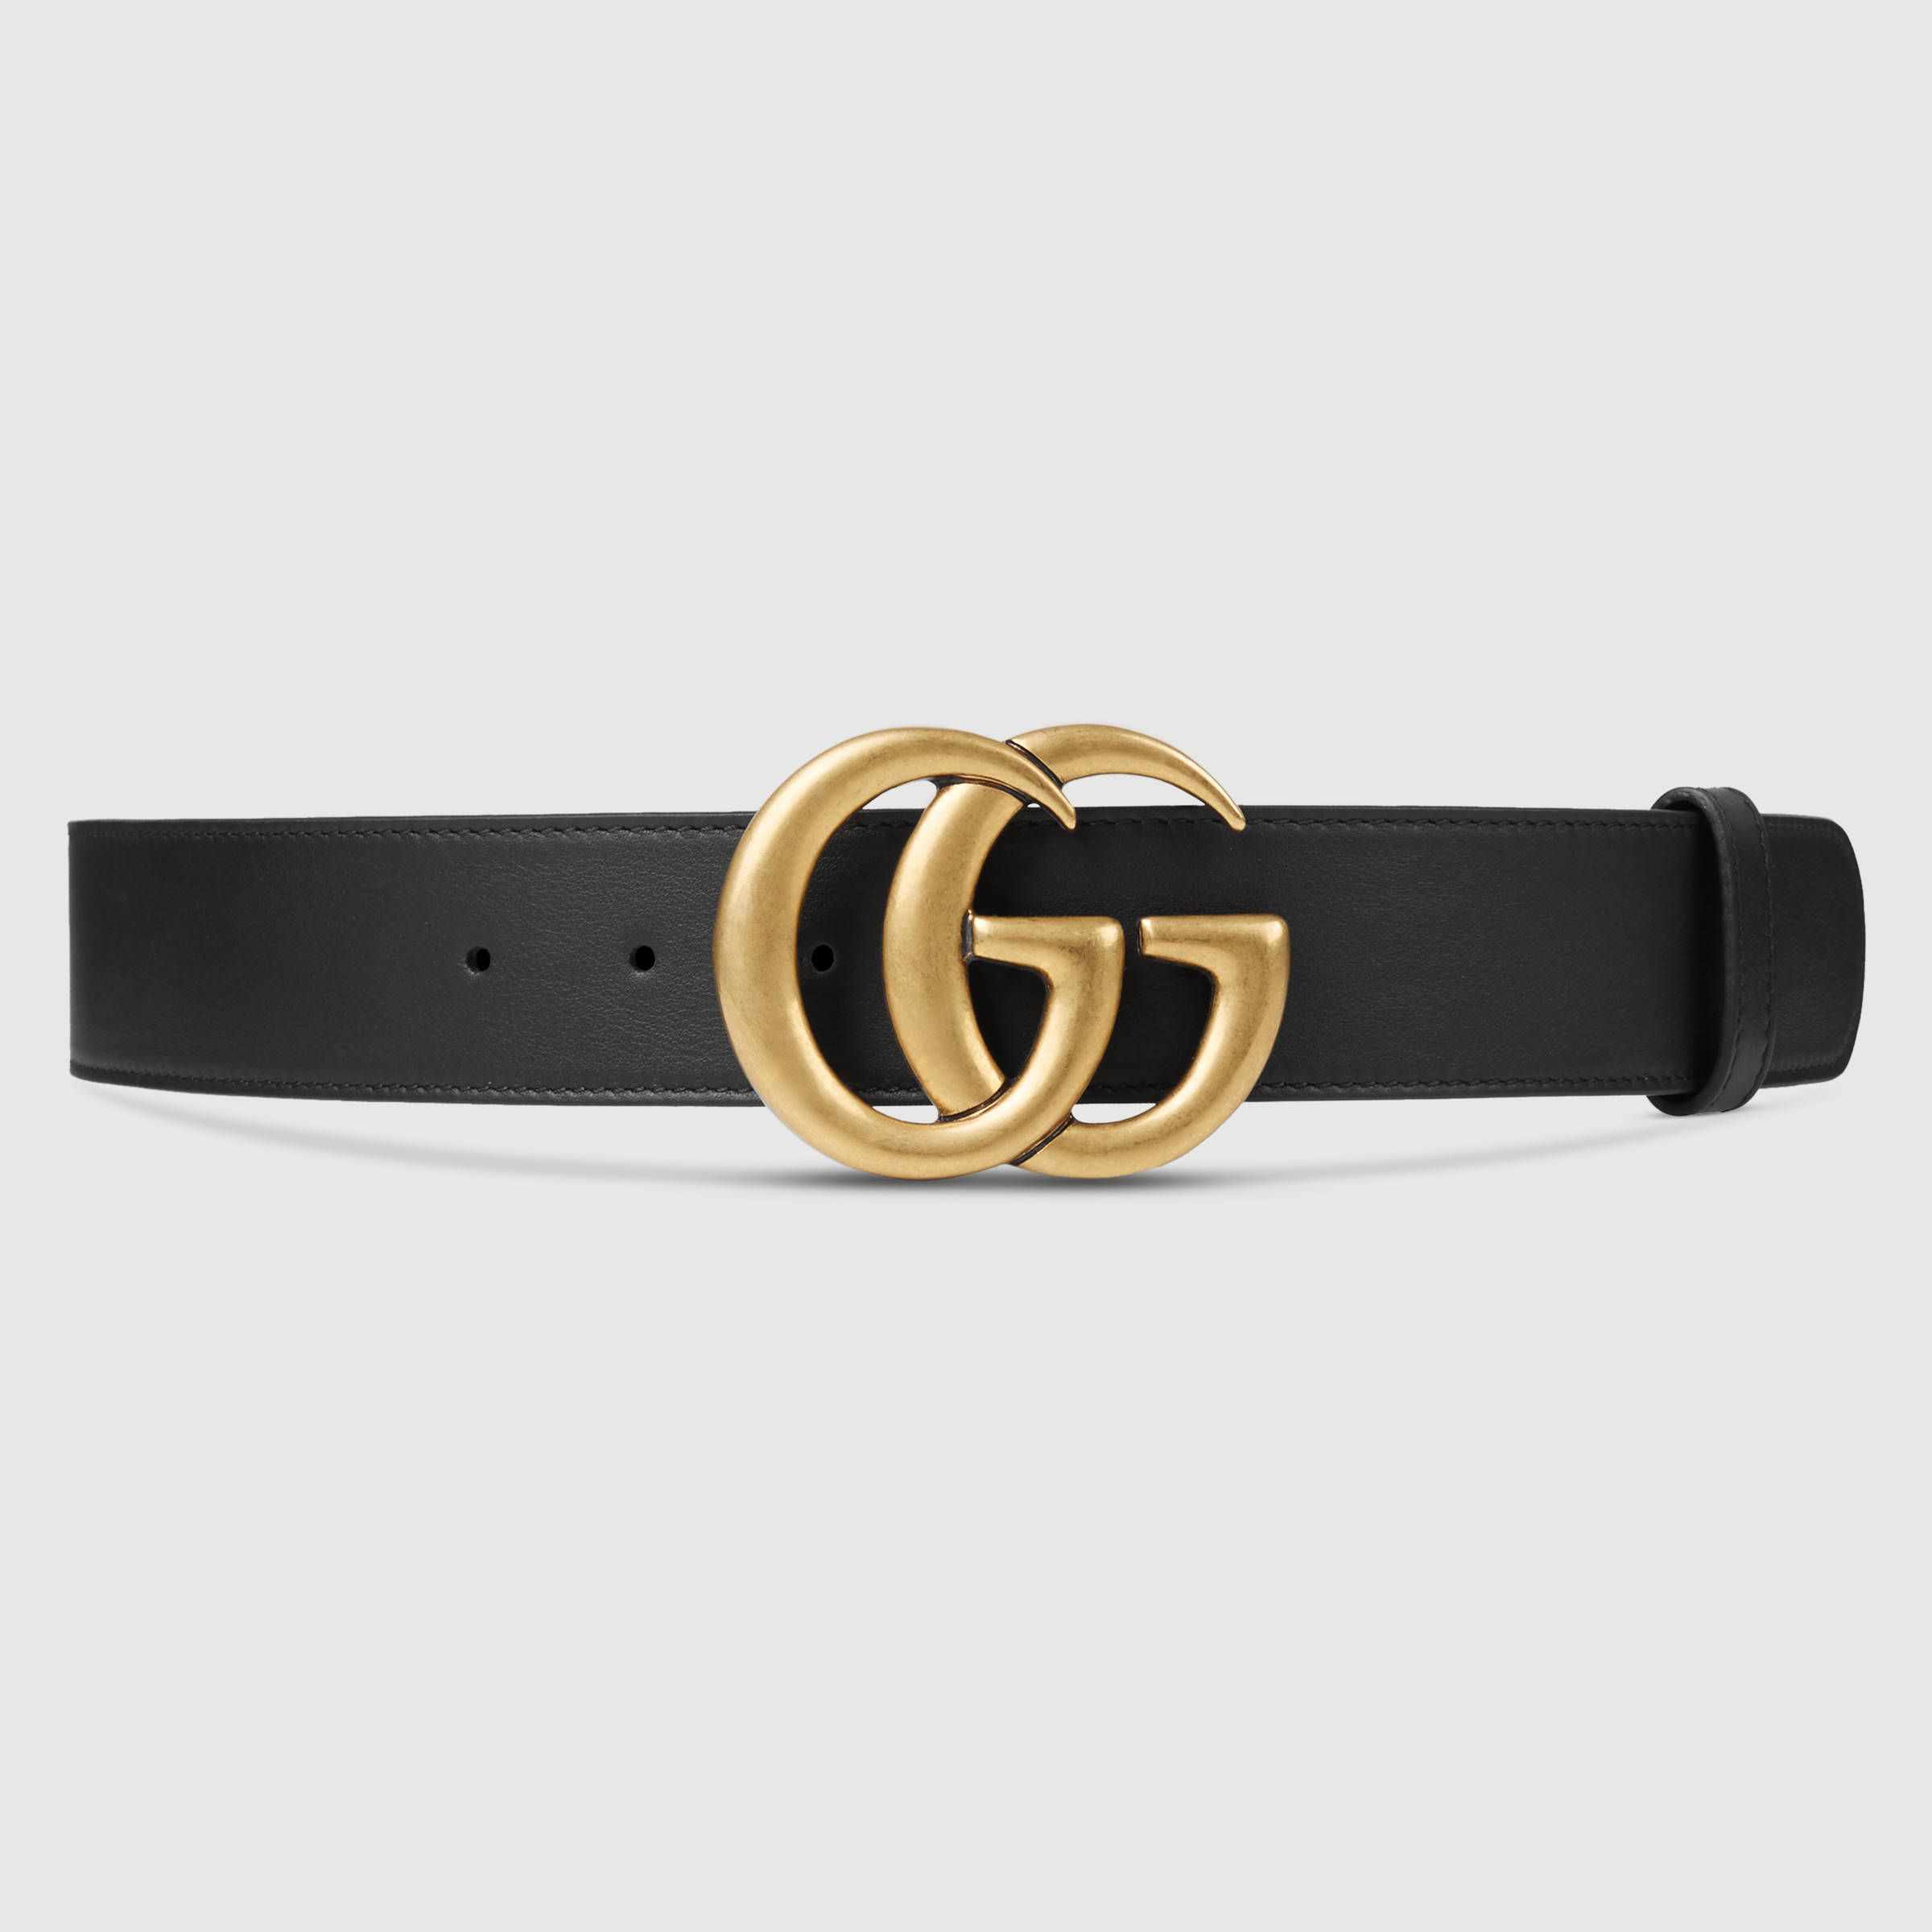 4ba4a198fda Gucci Women - Gucci Black Leather belt with double G buckle -  420.00